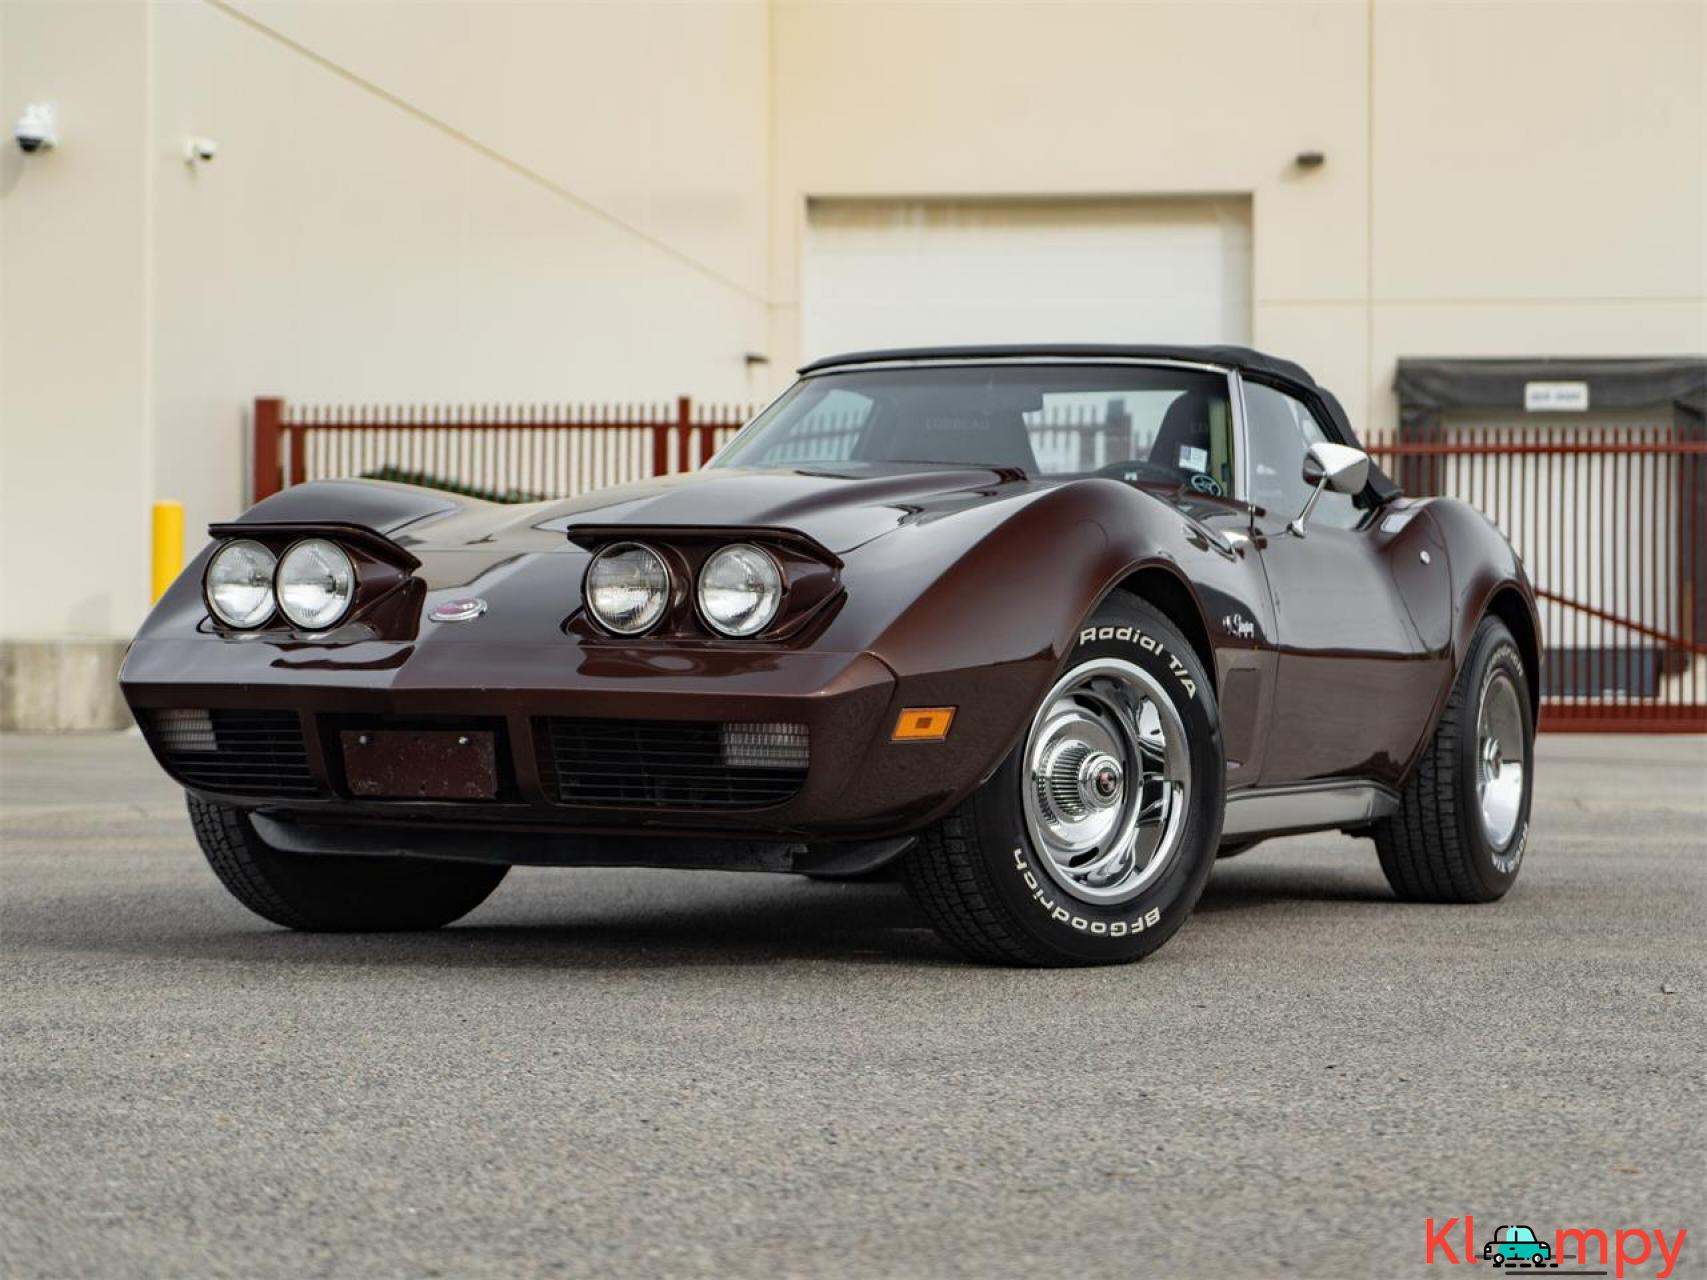 1974 Chevrolet Corvette Pheonix 350ci Crate Engine - 11/20